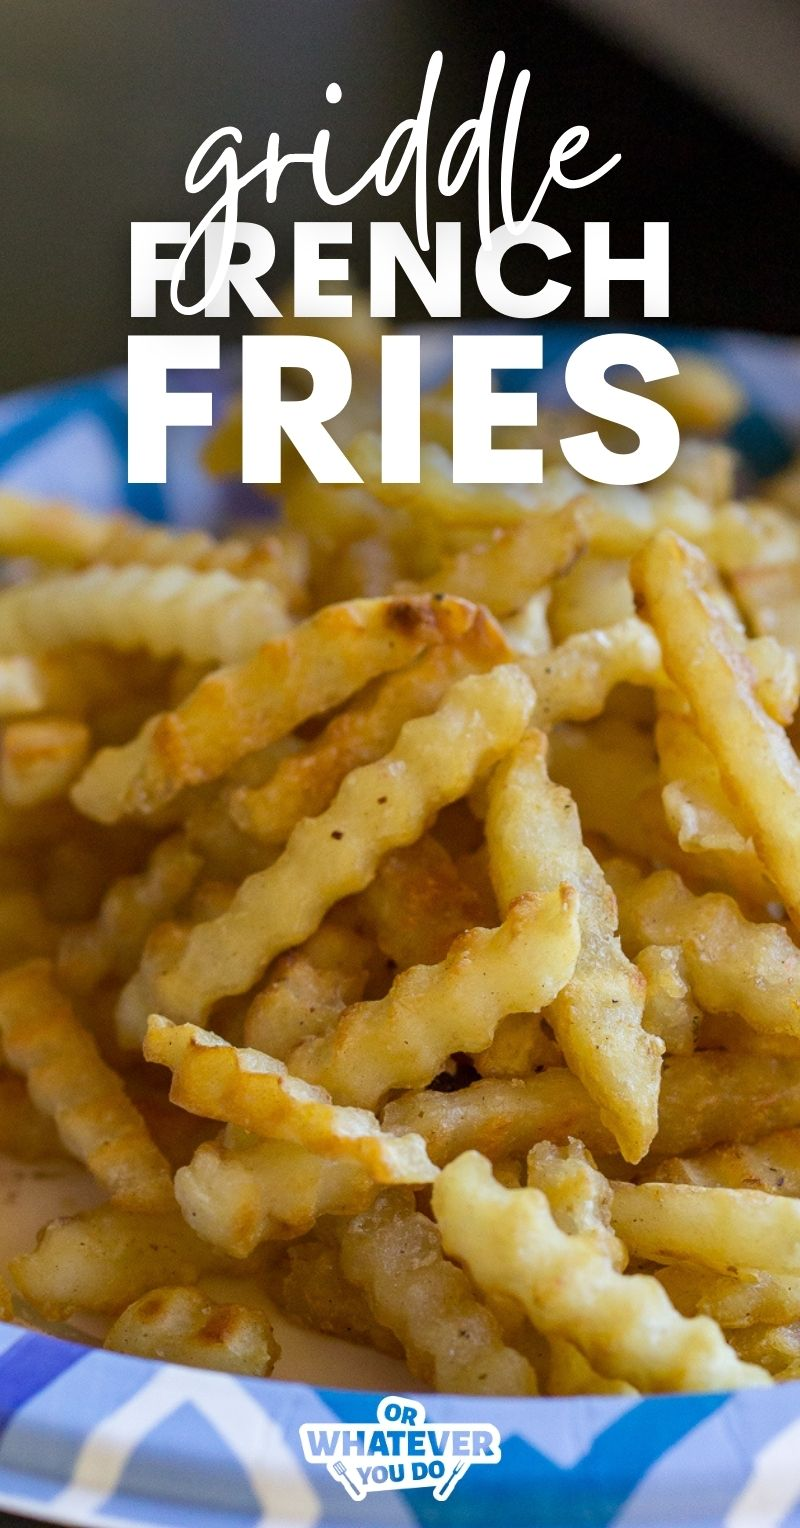 Blackstone French Fries on a paper plate